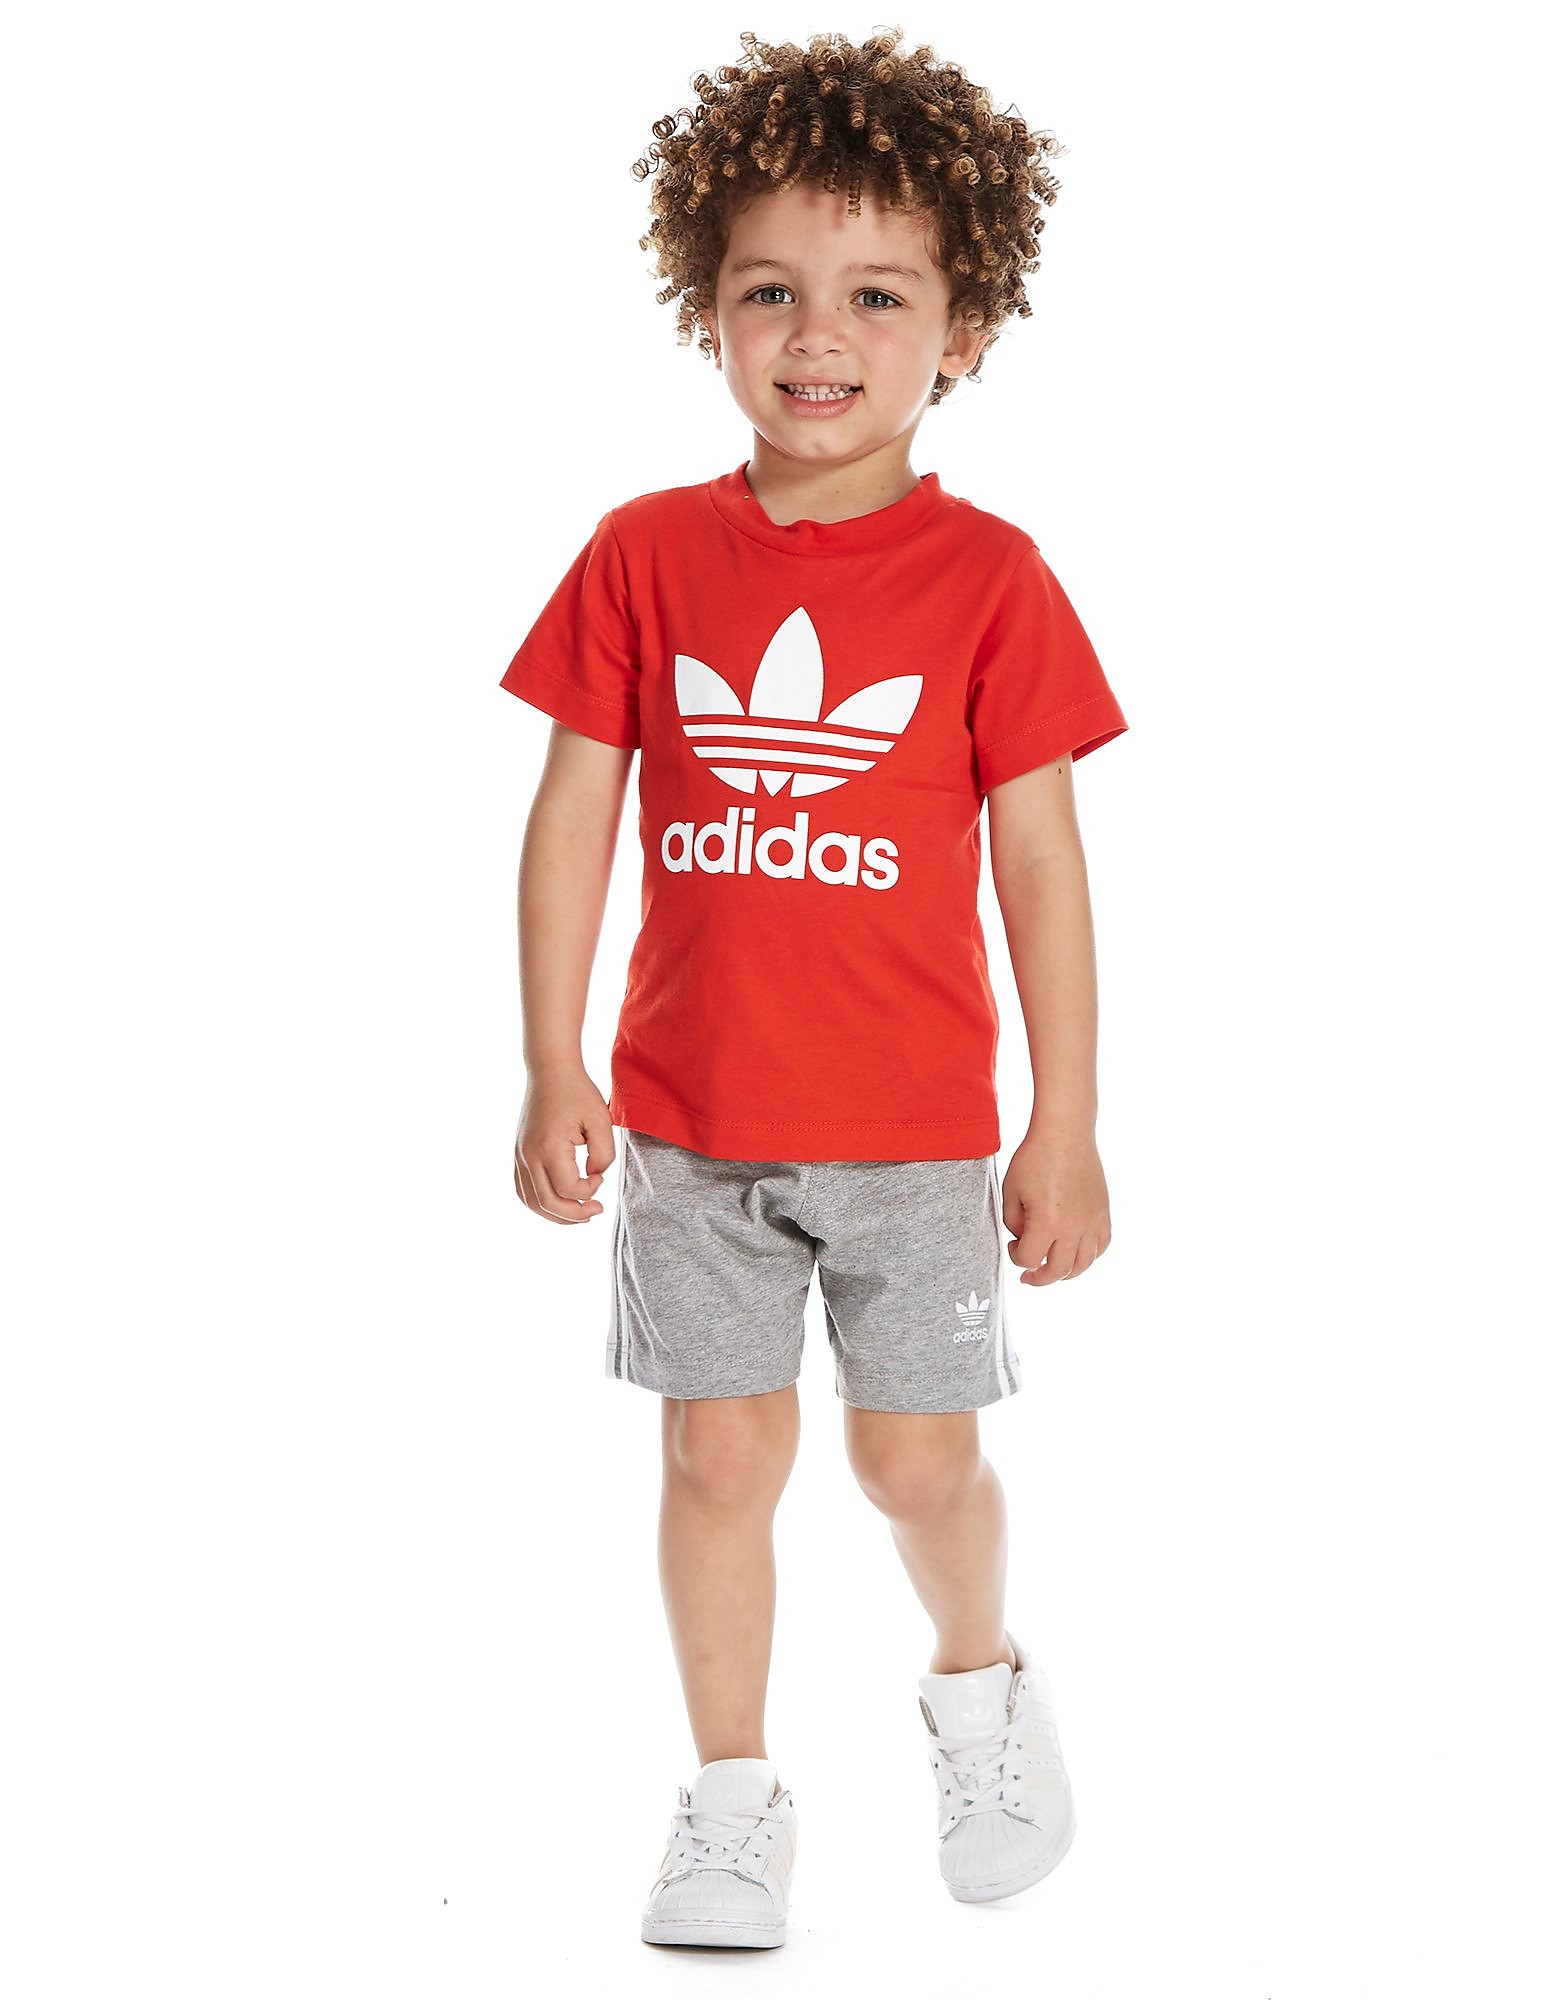 adidas Trefoil T-Shirt and Shorts Set Infants